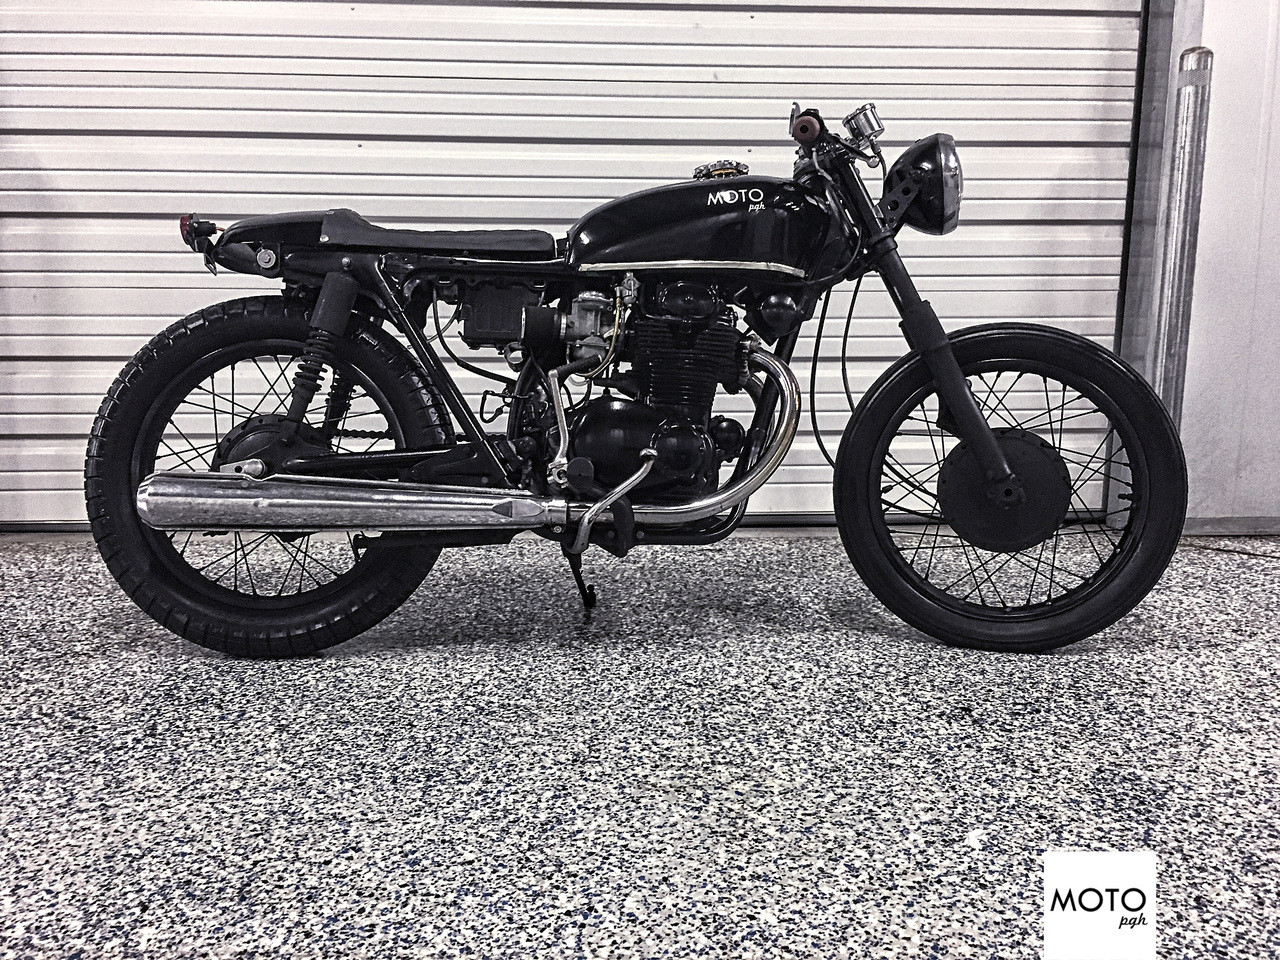 SOLD964 1972 Honda CB350 Black On Cafe Racer